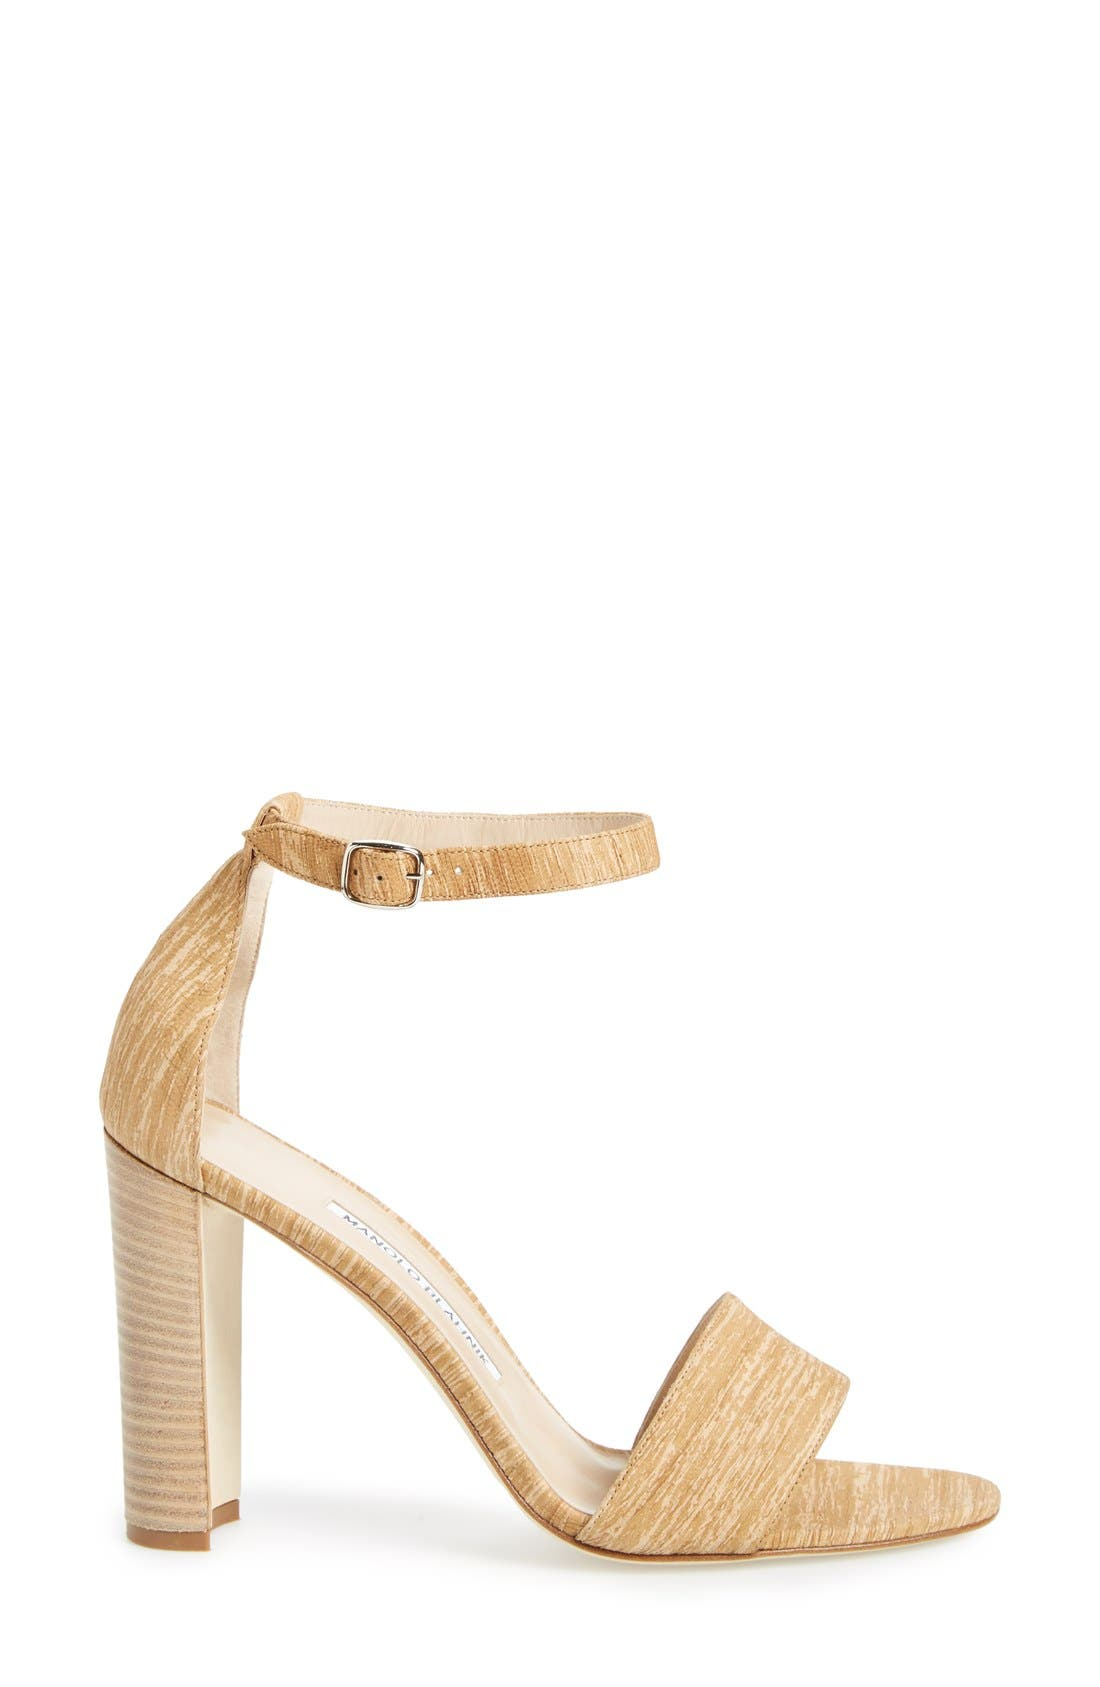 MANOLO BLAHNIK,                             'Lauratopri' Sandal,                             Alternate thumbnail 2, color,                             250